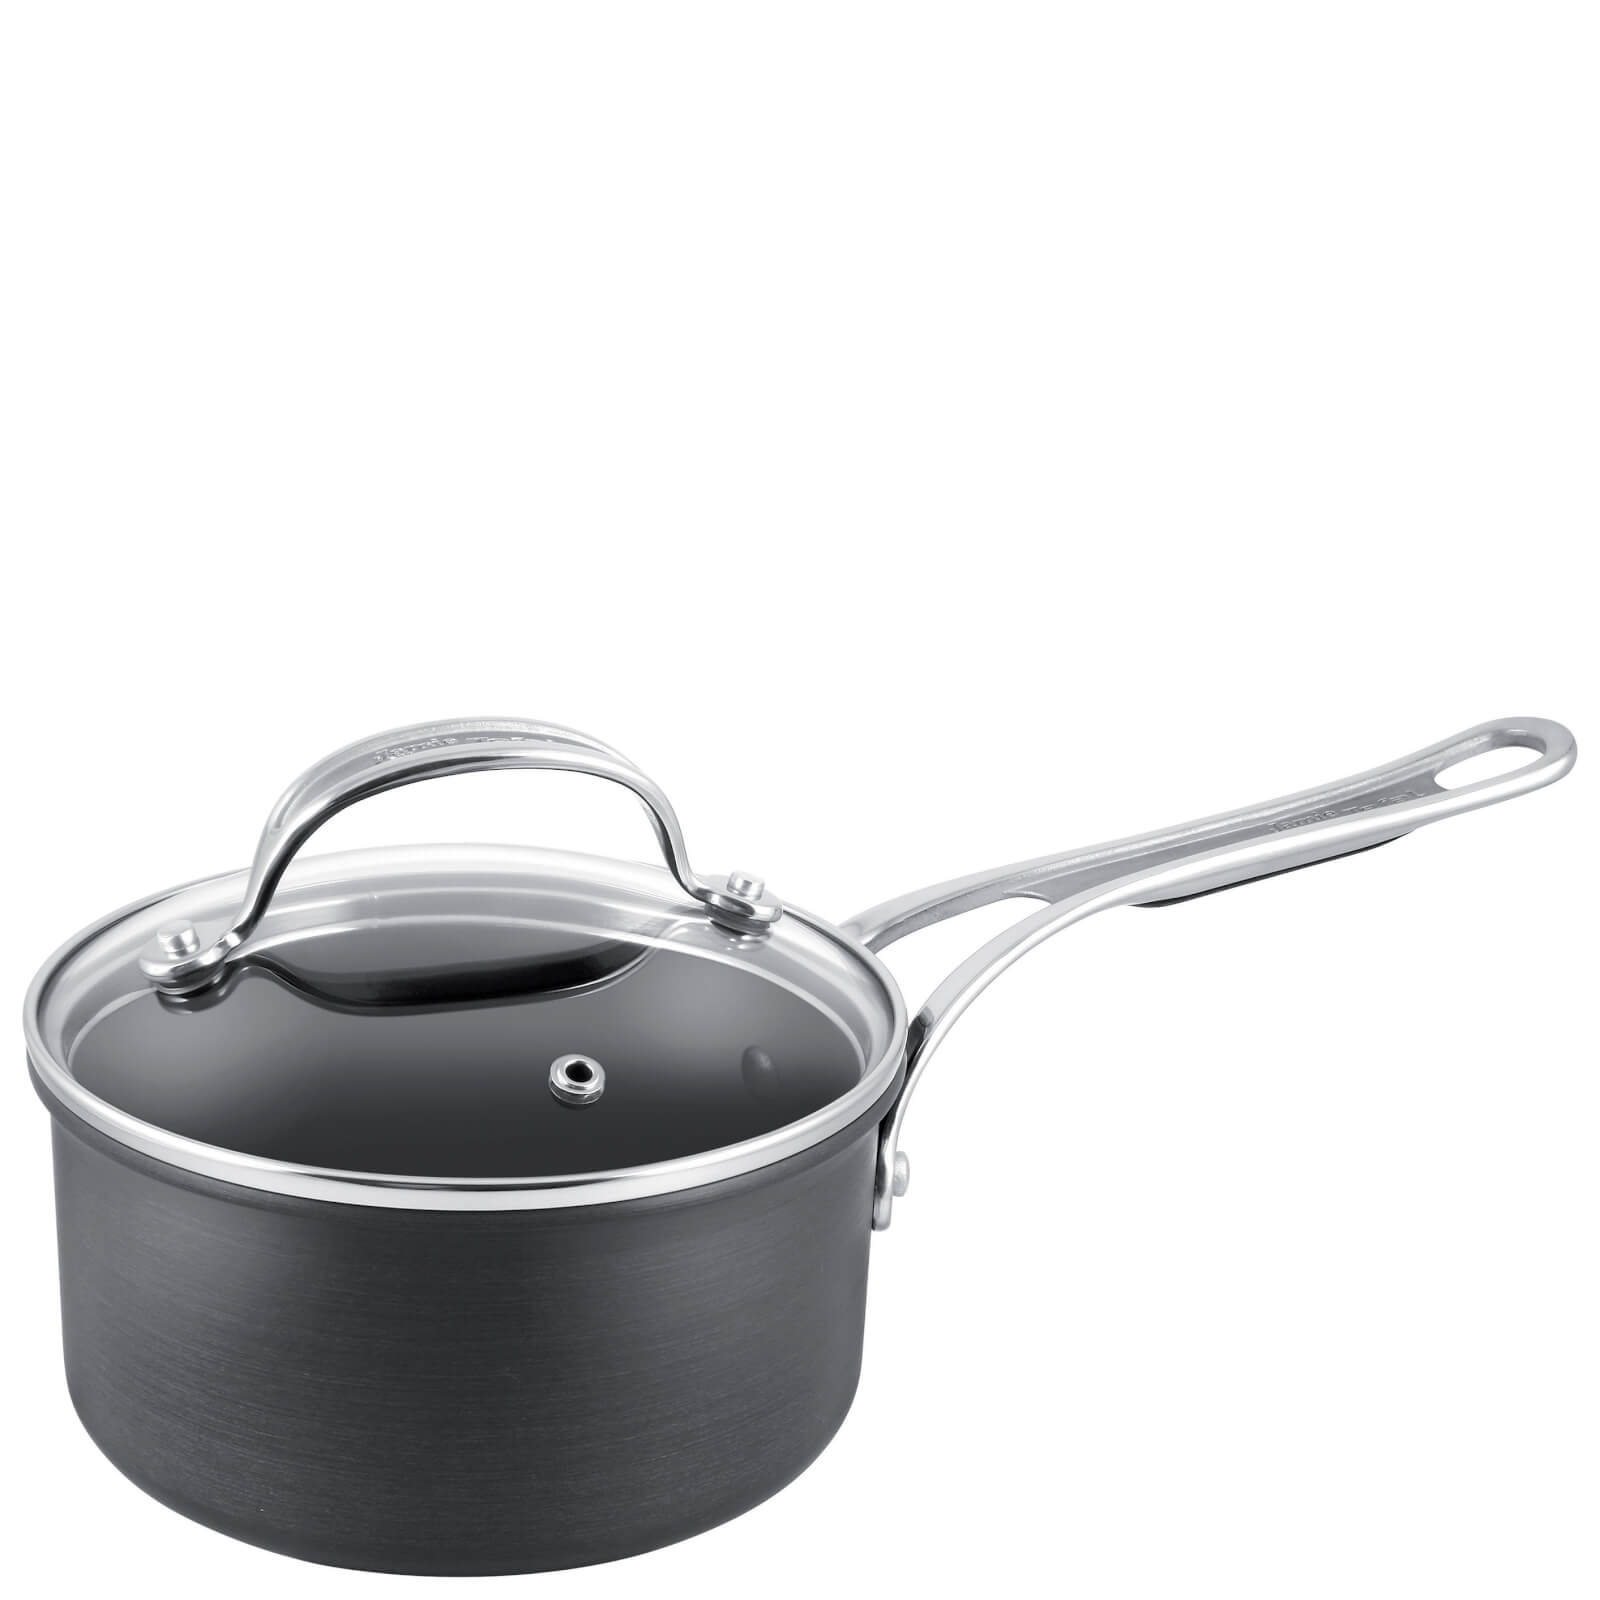 Jamie Oliver by Tefal H9022444 Hard Anodised Non-Stick Saucepan With Lid - 20cm